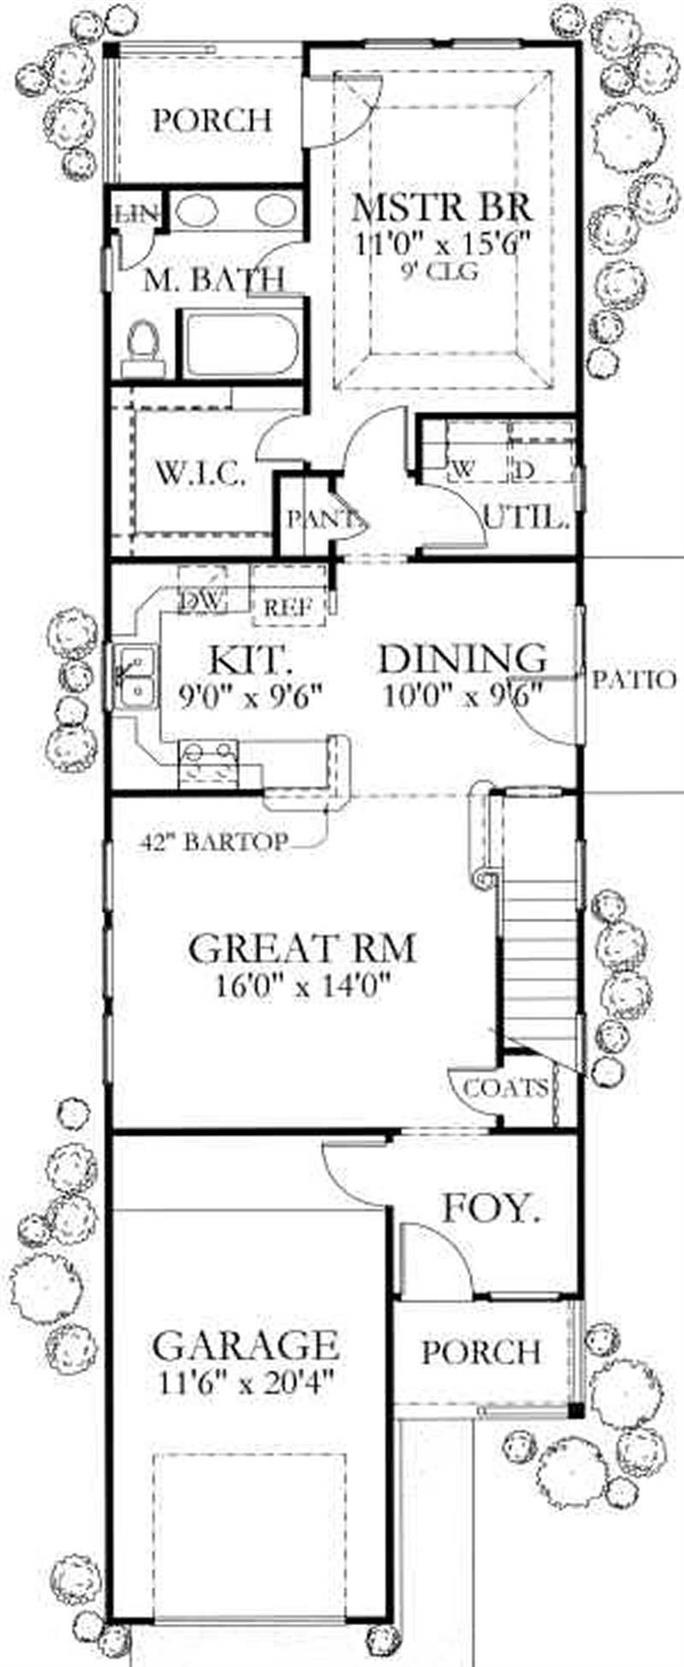 narrow house plans with garage awesome best modern garage ideas affordable bungalow country house plans home design with narrow house plans with garage